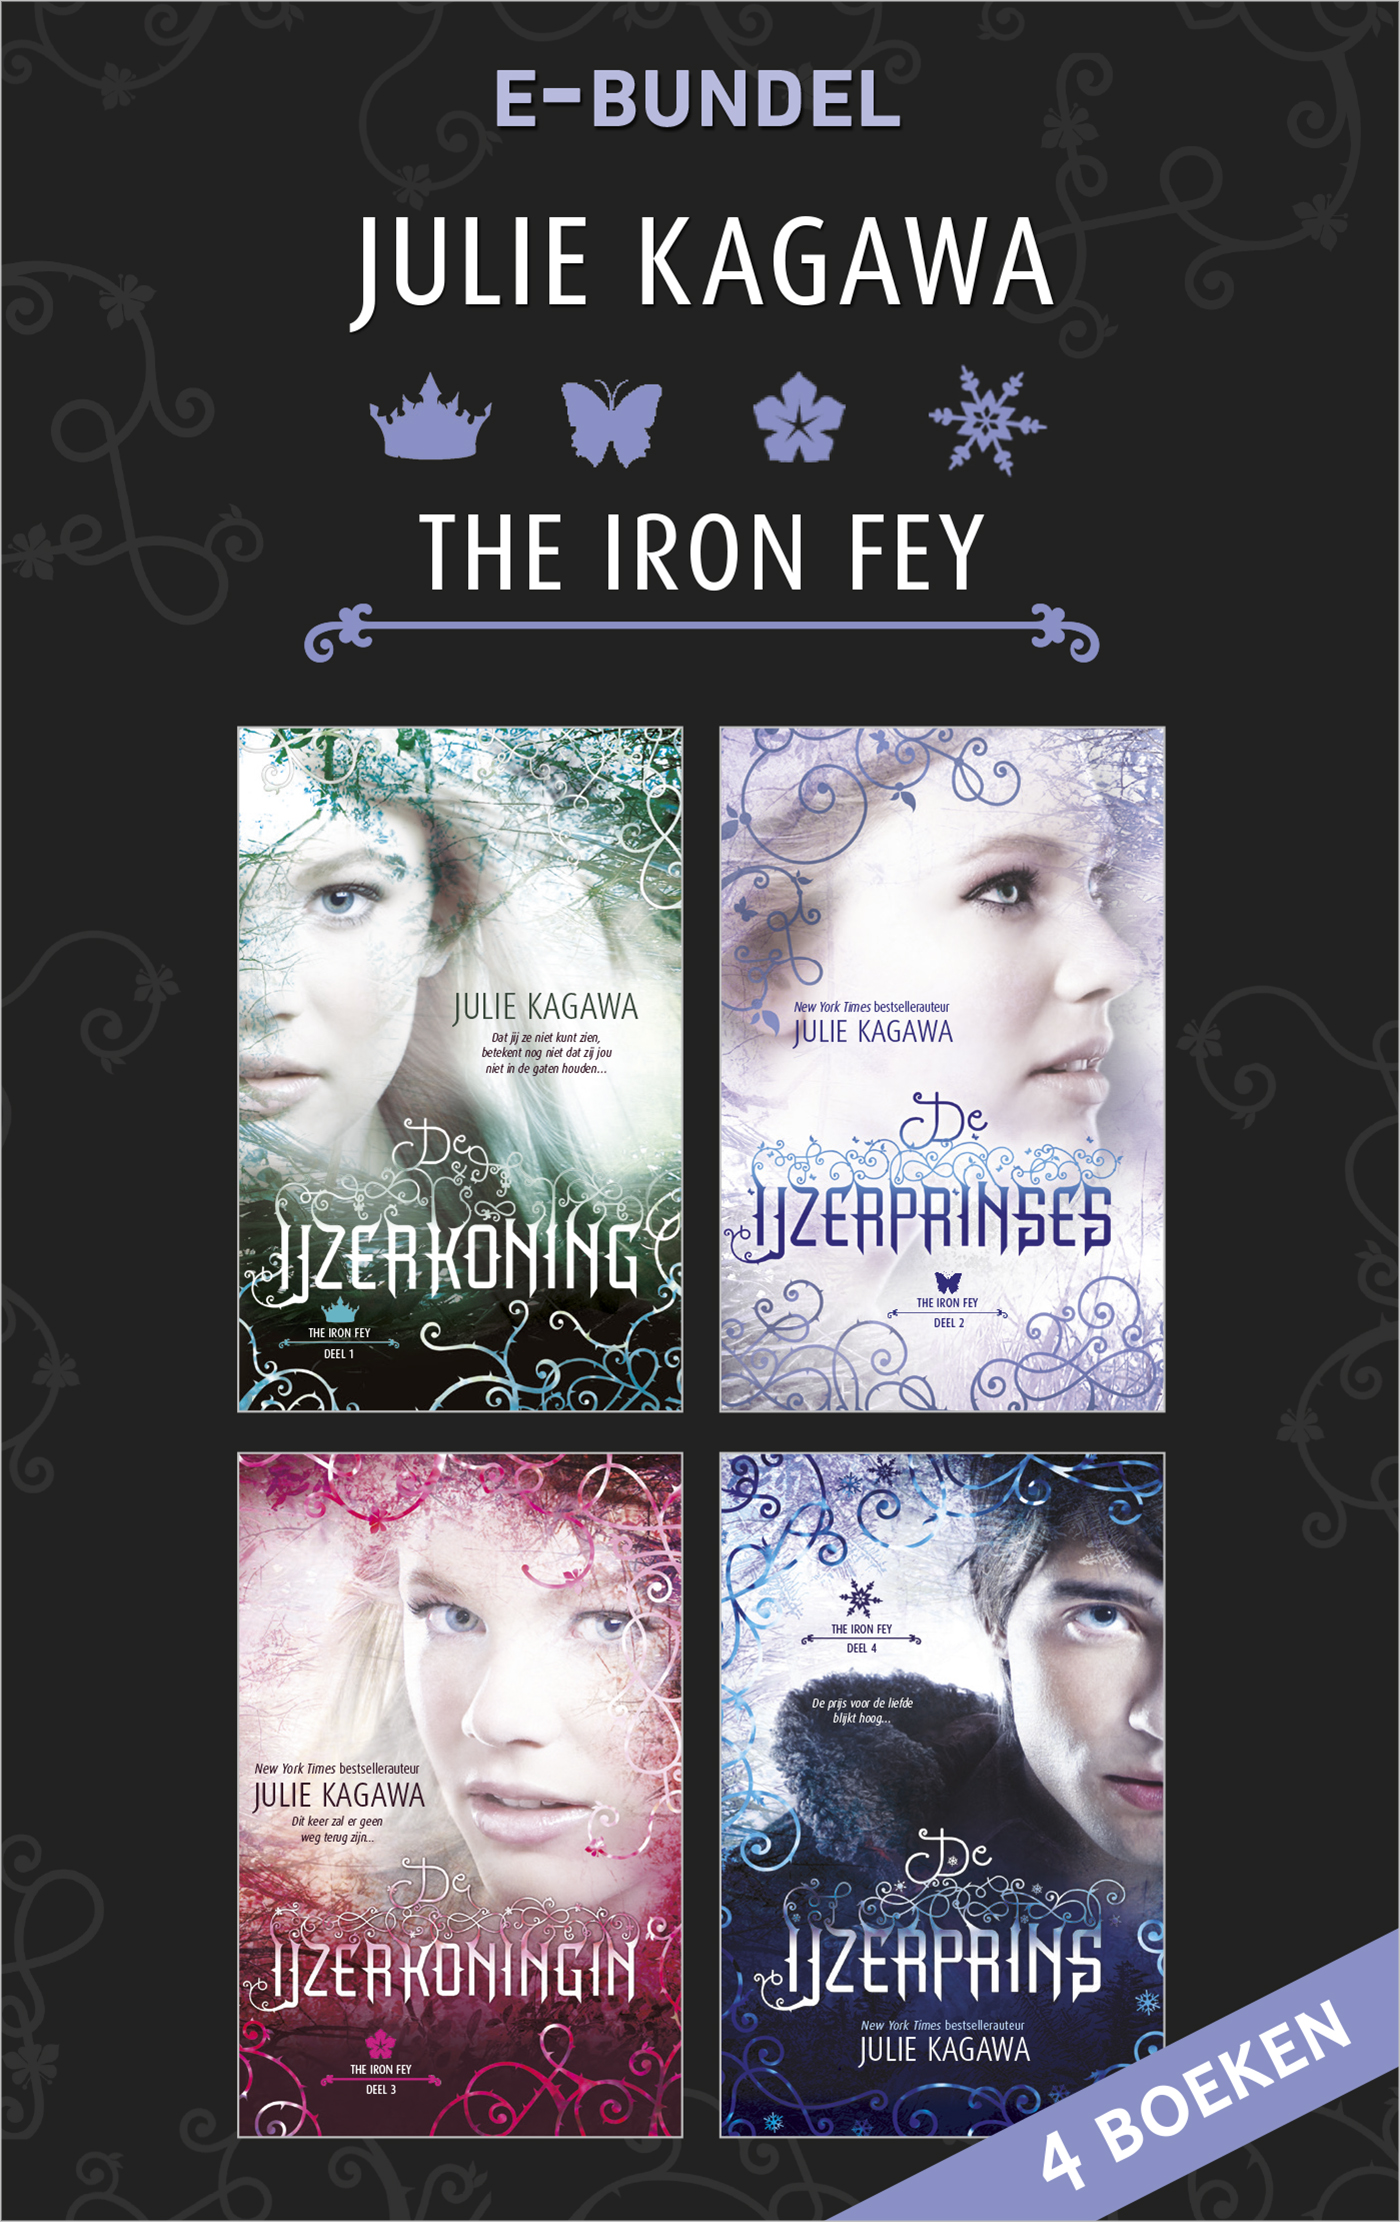 The Iron Fey